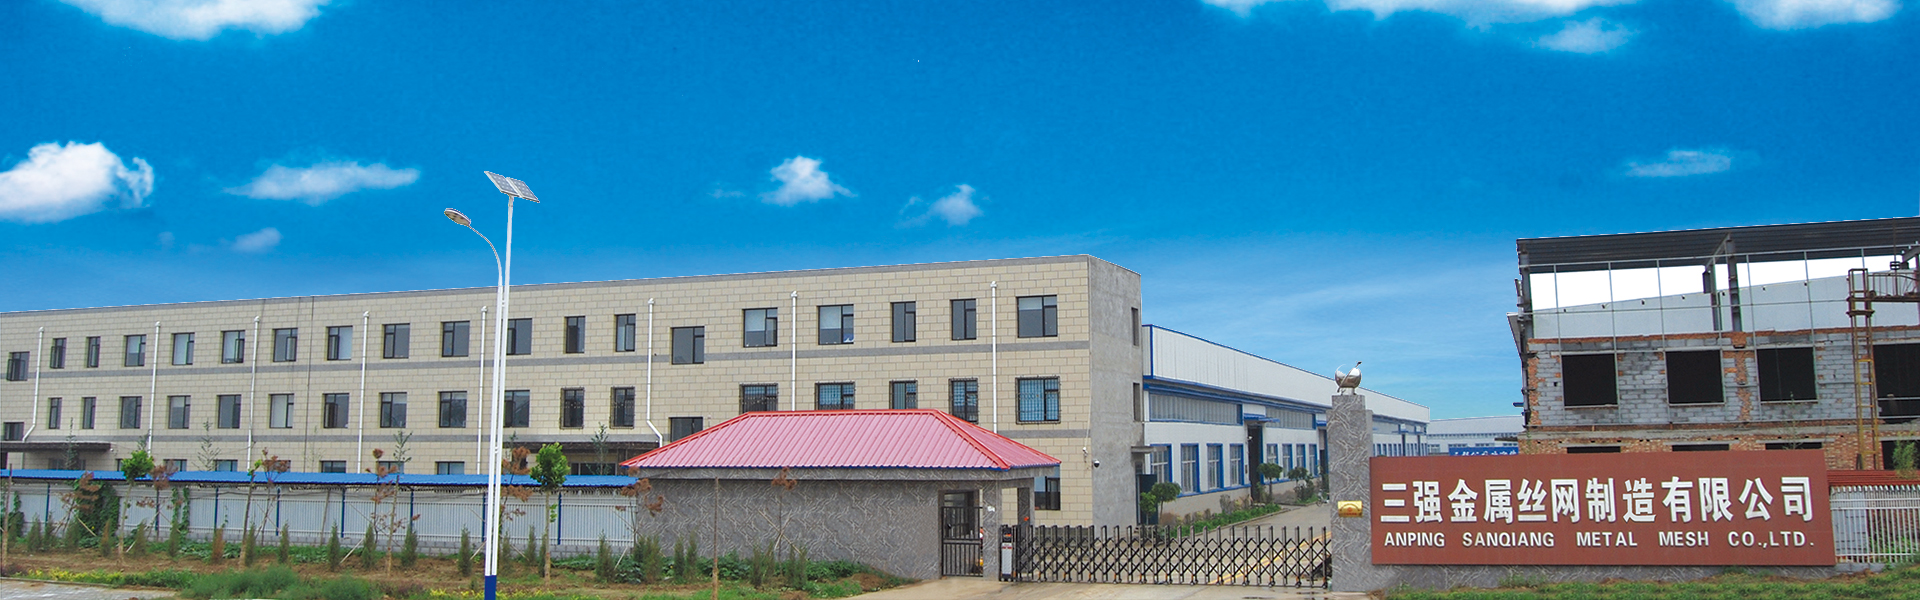 ANPING COUNTY SANQIANG METAL WIRE MESH PRODUCTS CO., LTD.